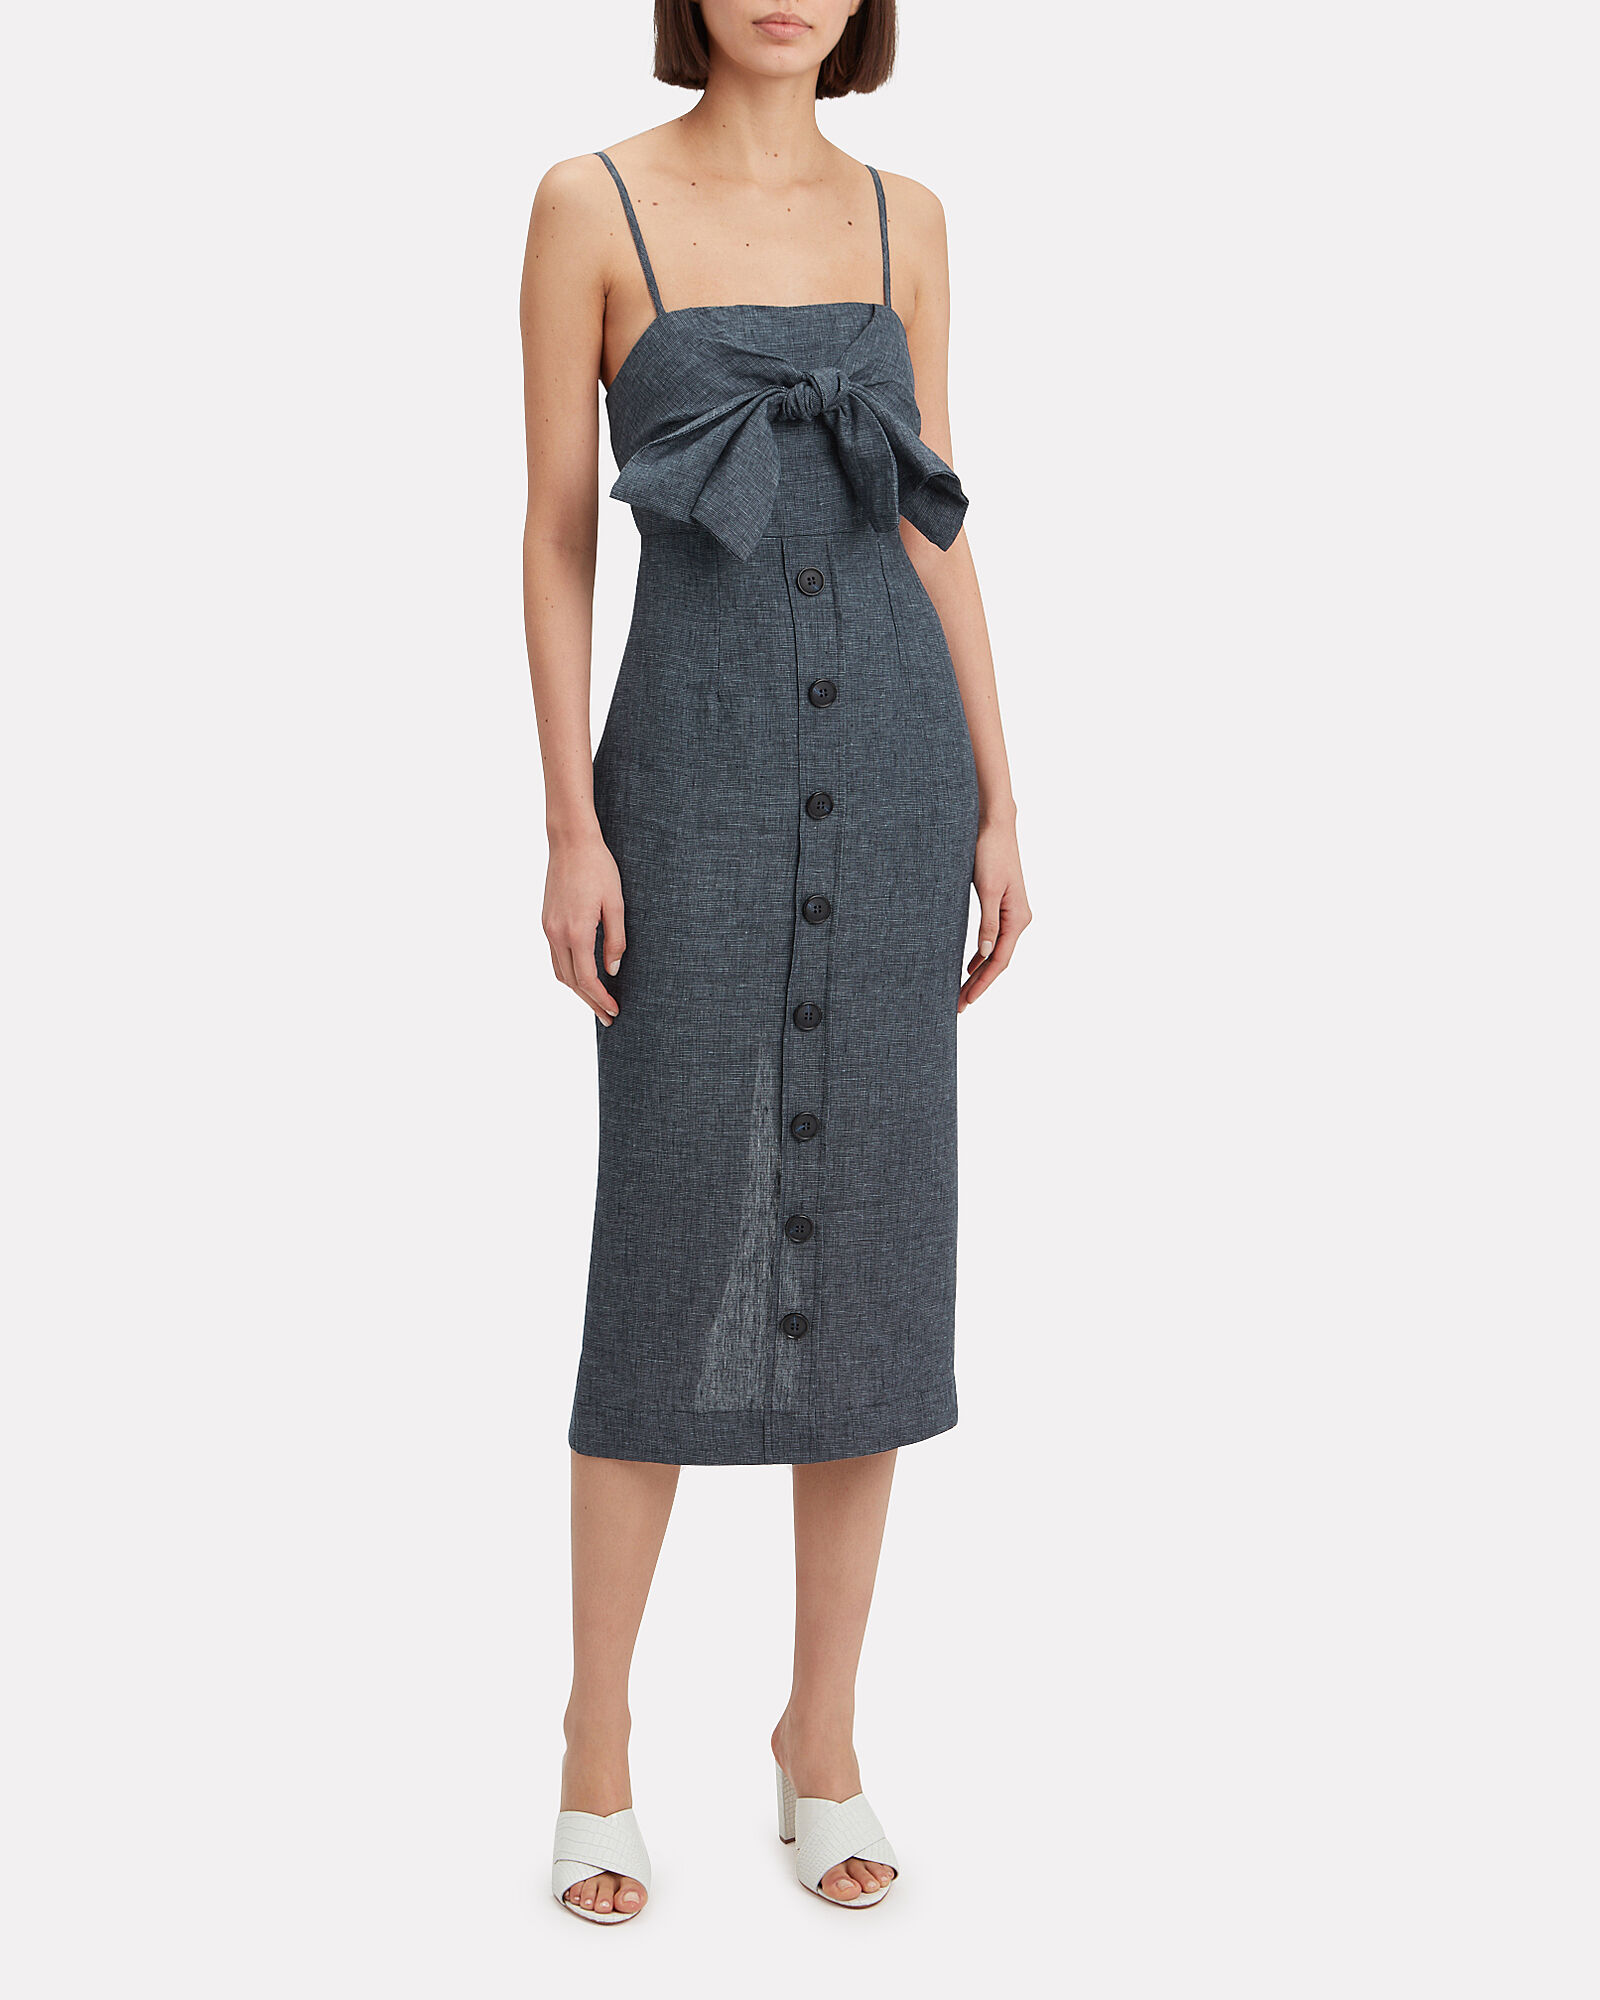 Cardozo Linen Dress, NAVY, hi-res